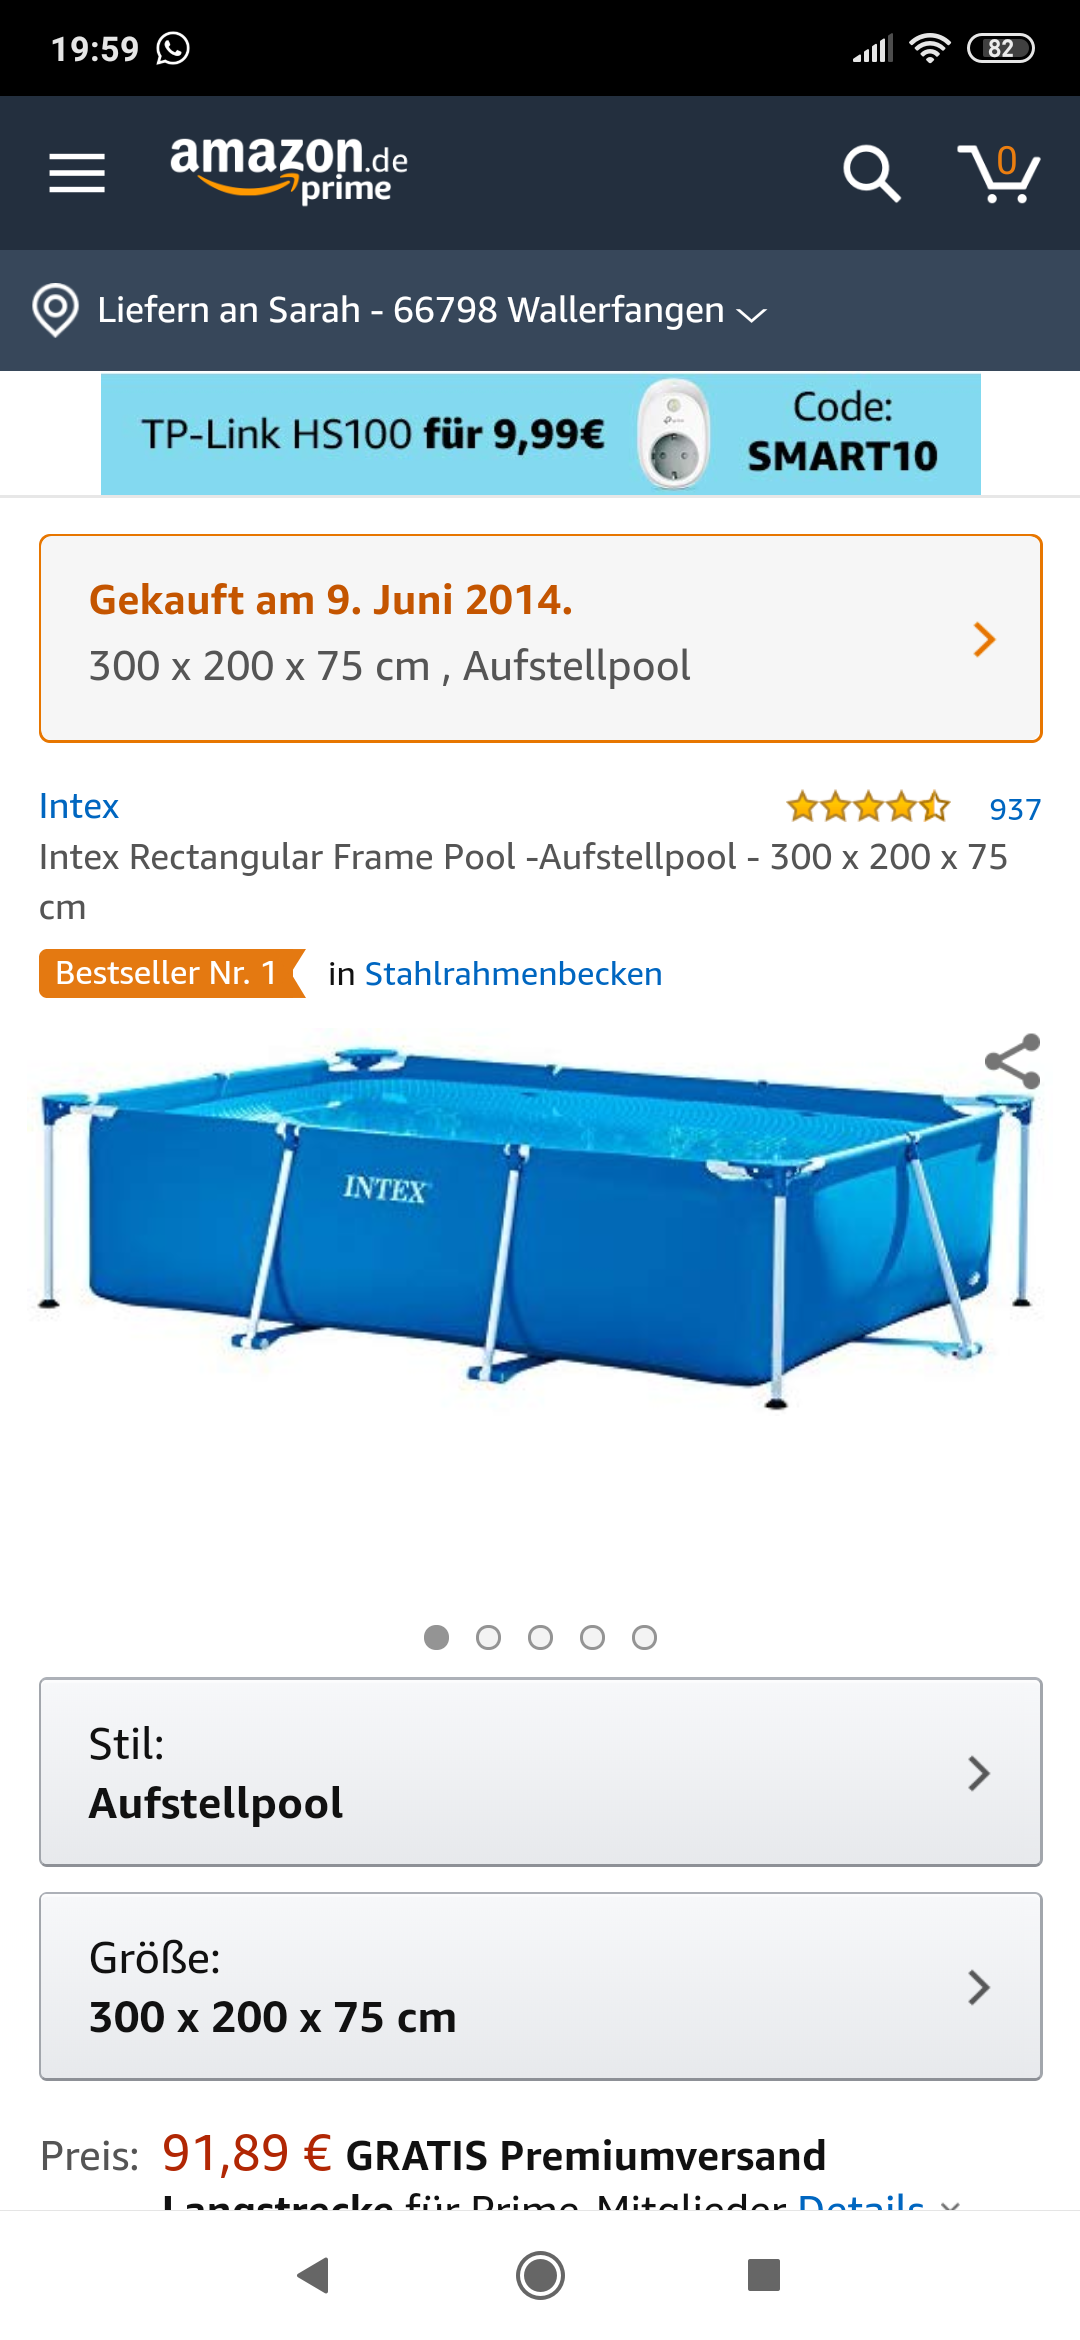 screenshot_2019-07-03-19-59-03-903_com-amazon-mshop-android-shopping-png.185502